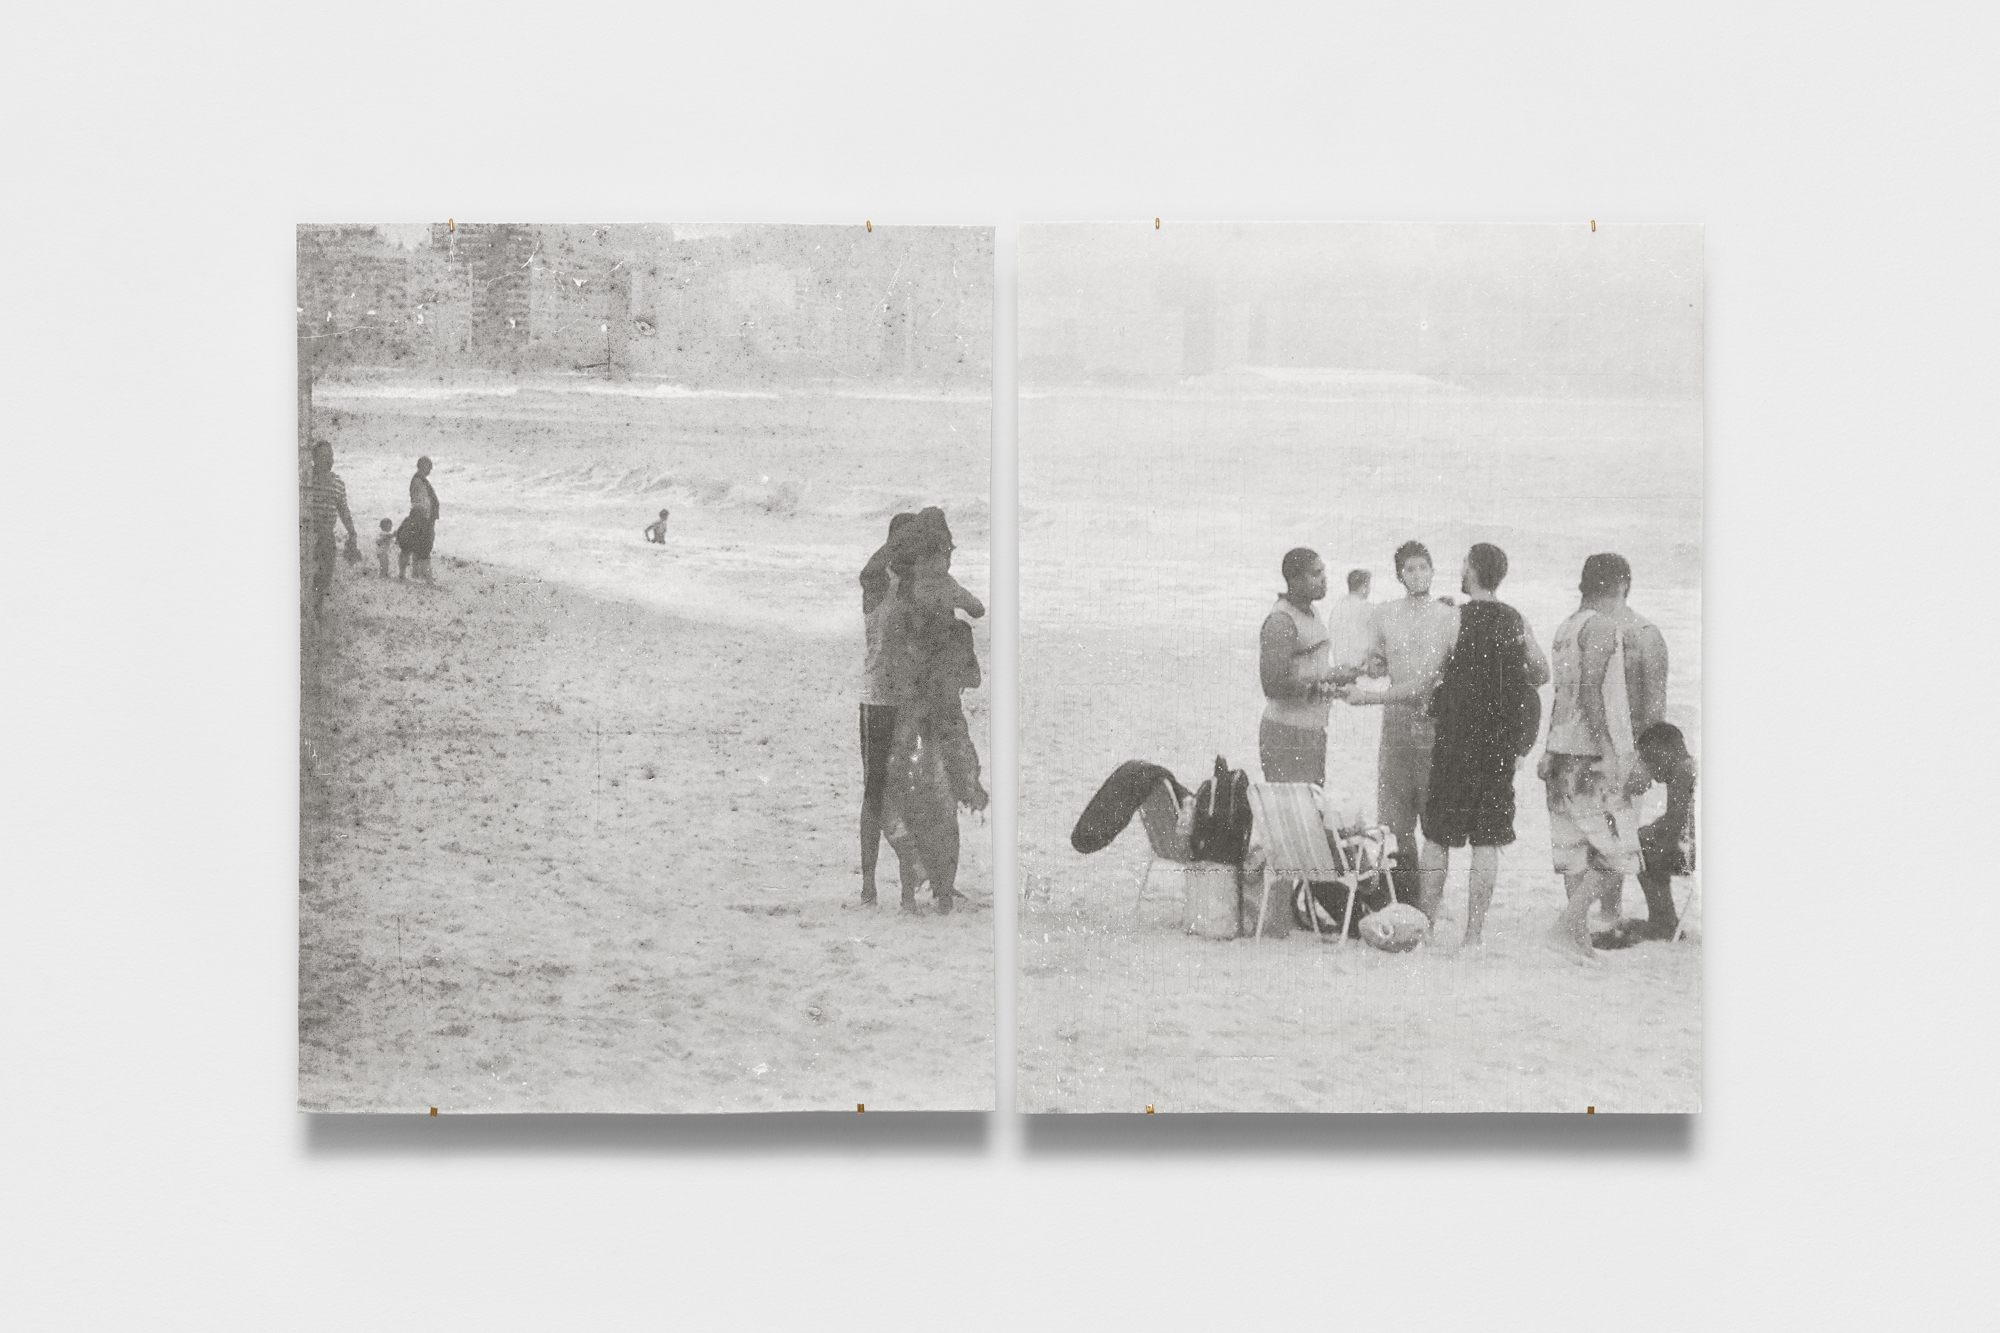 Two-panel black and white photographic print on porcelain